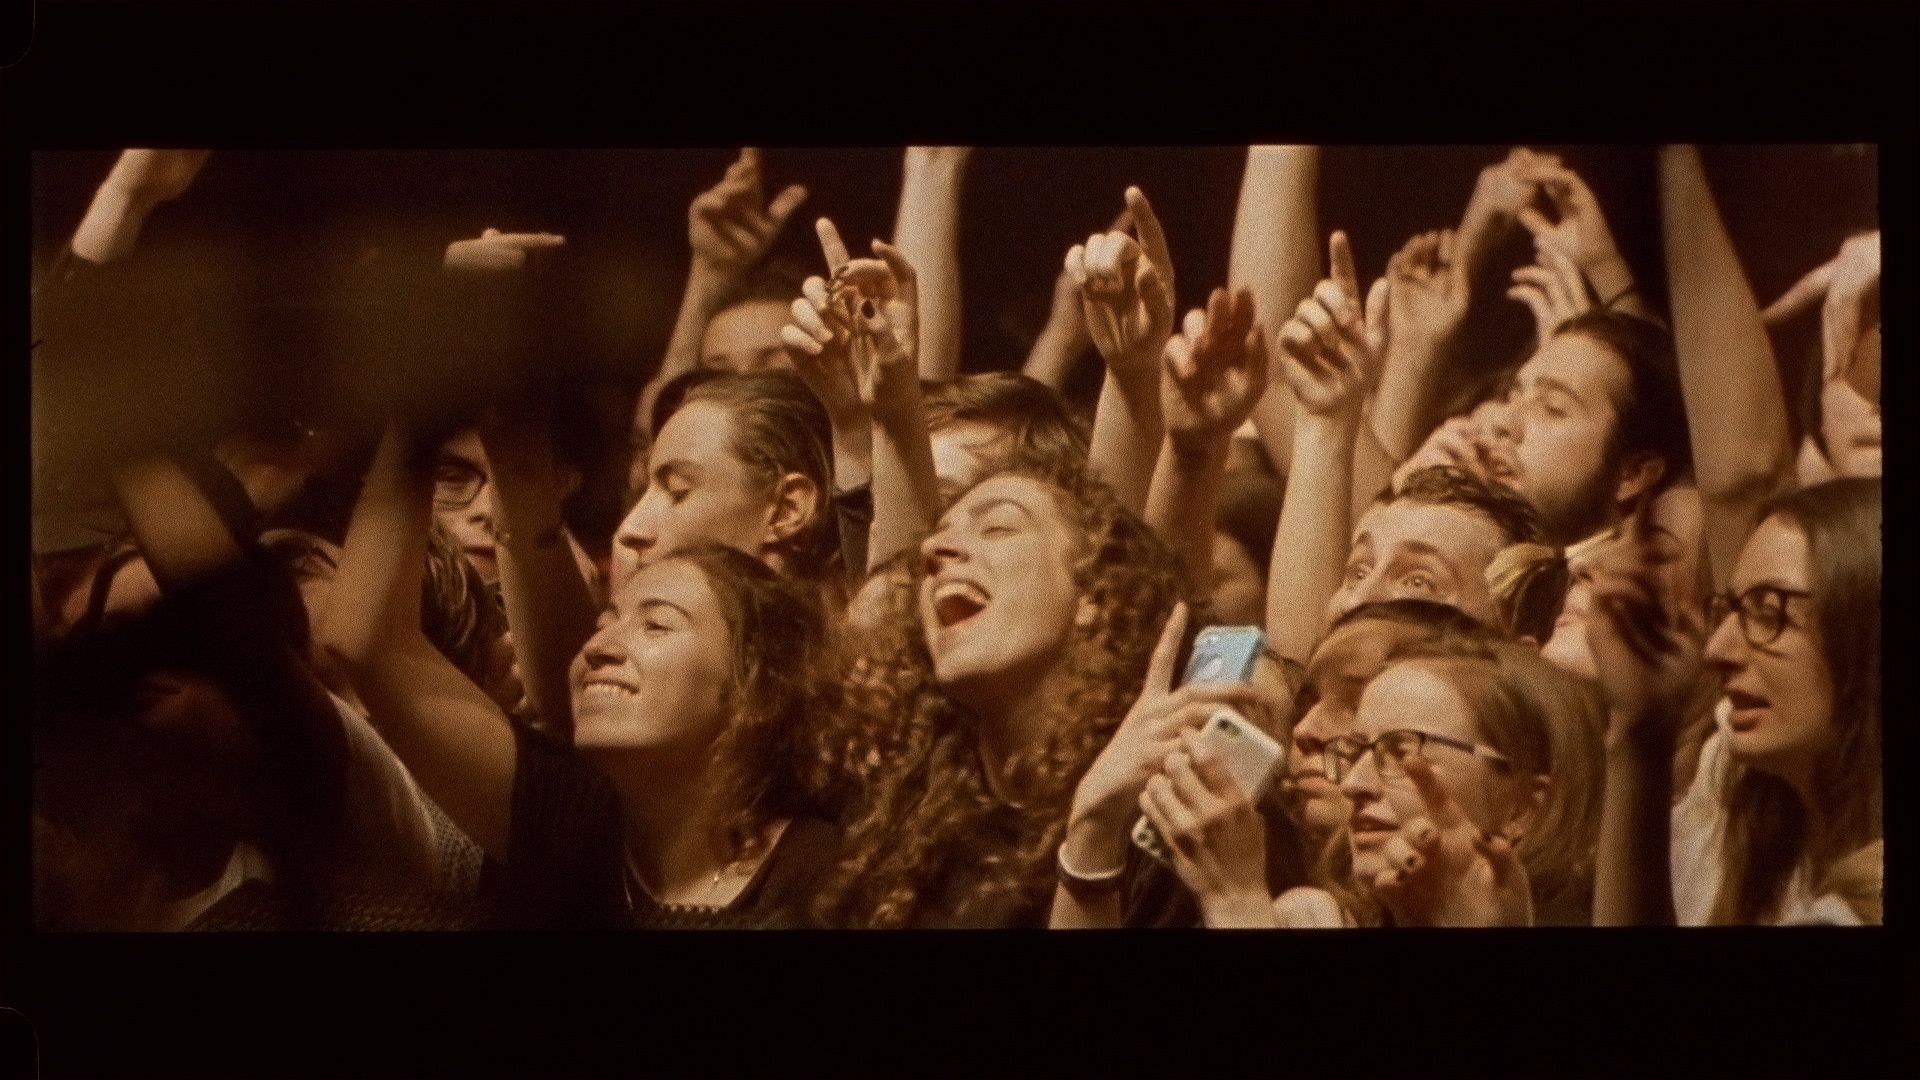 happy crowd singing along to music for L'Osstidfilm documentary filmed by Vincent Ruel-Cote from Les Gamins about L'Osstidtour